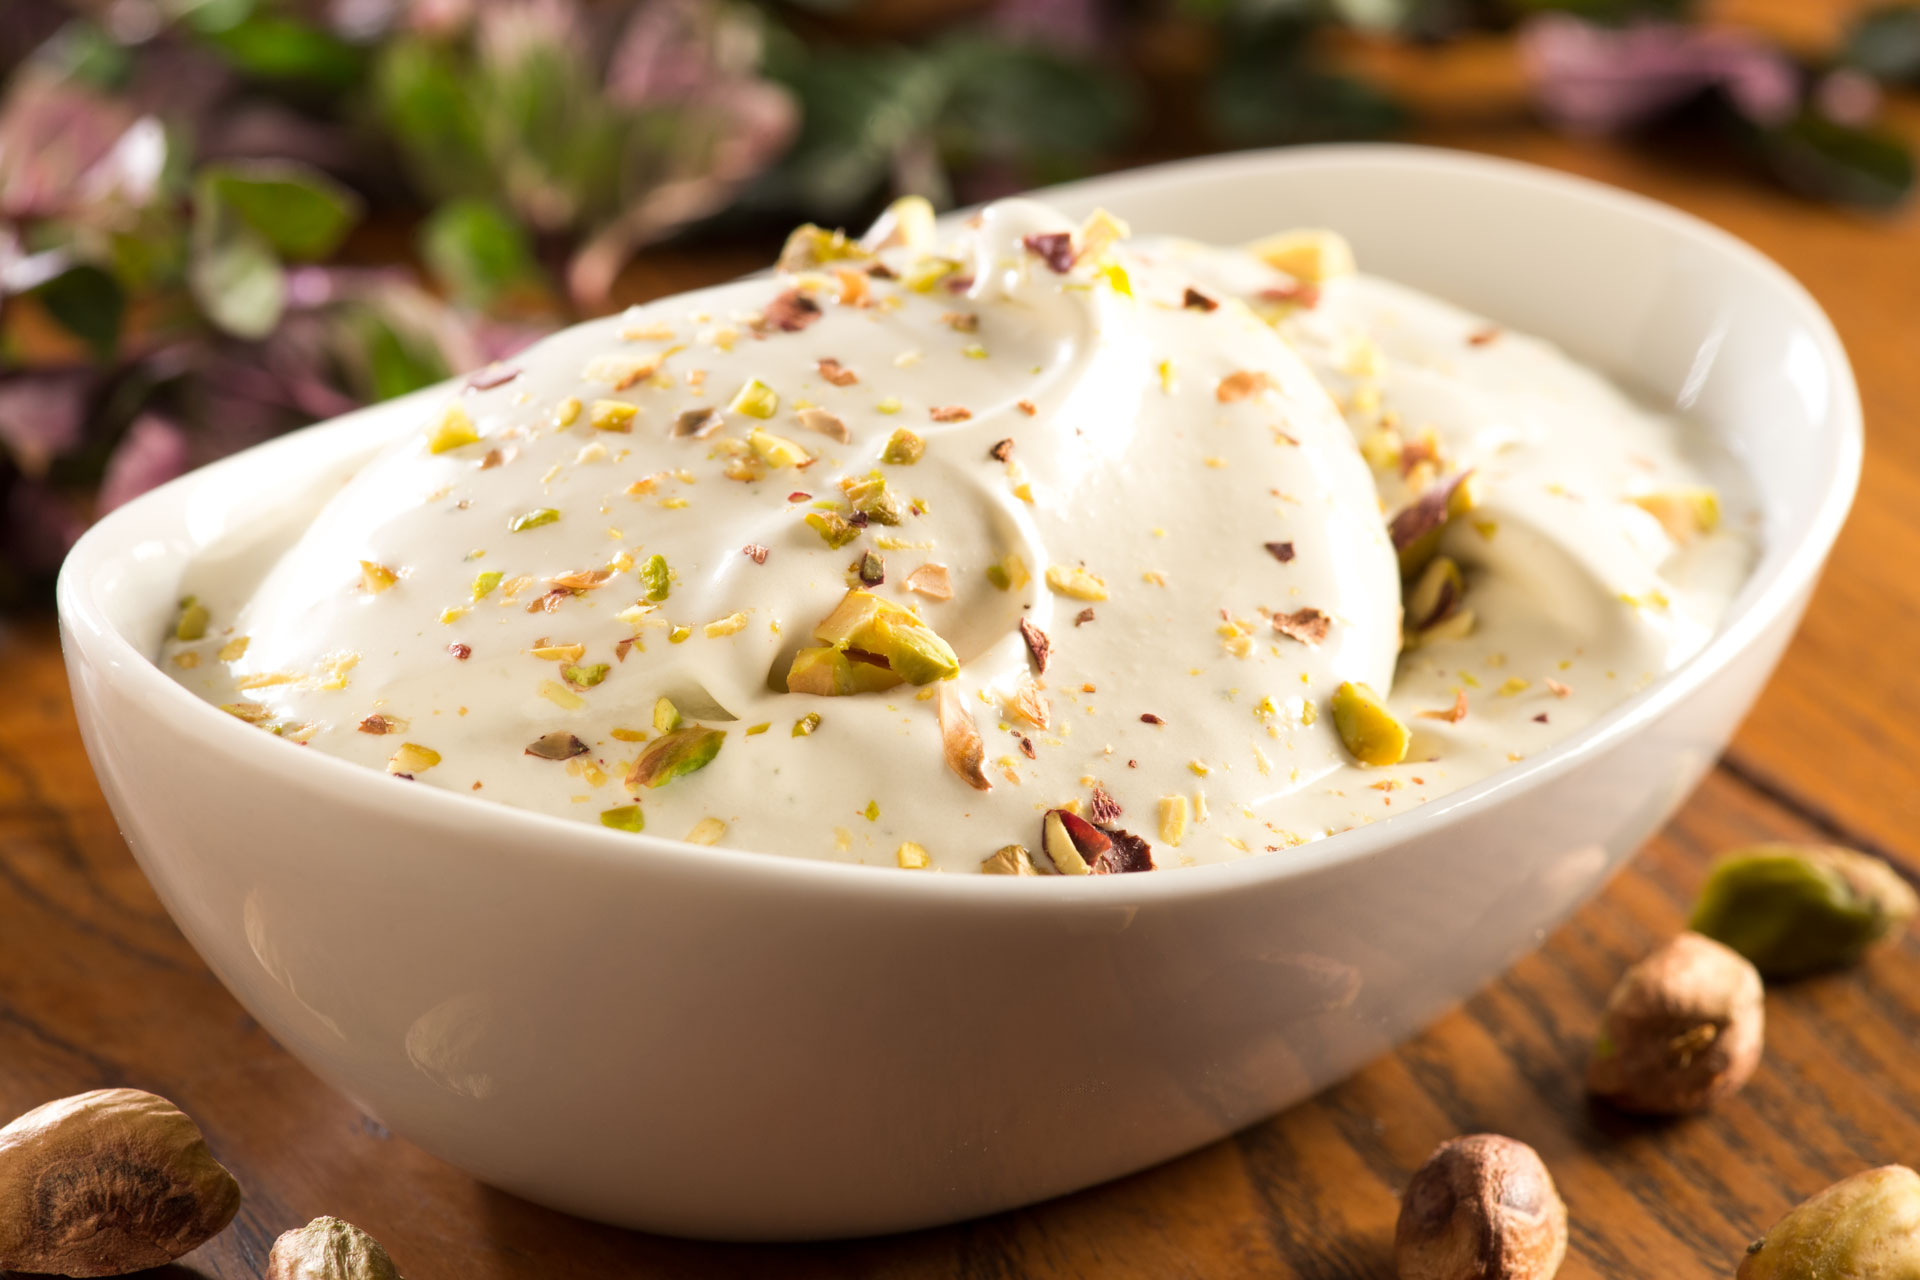 This recipe uses freshly picked mint sprigs that have been strained into a vanilla custard to create a light, minty dessert. We paired it with pistachios, this year's nut of choice, to get a really unique flavor combination!